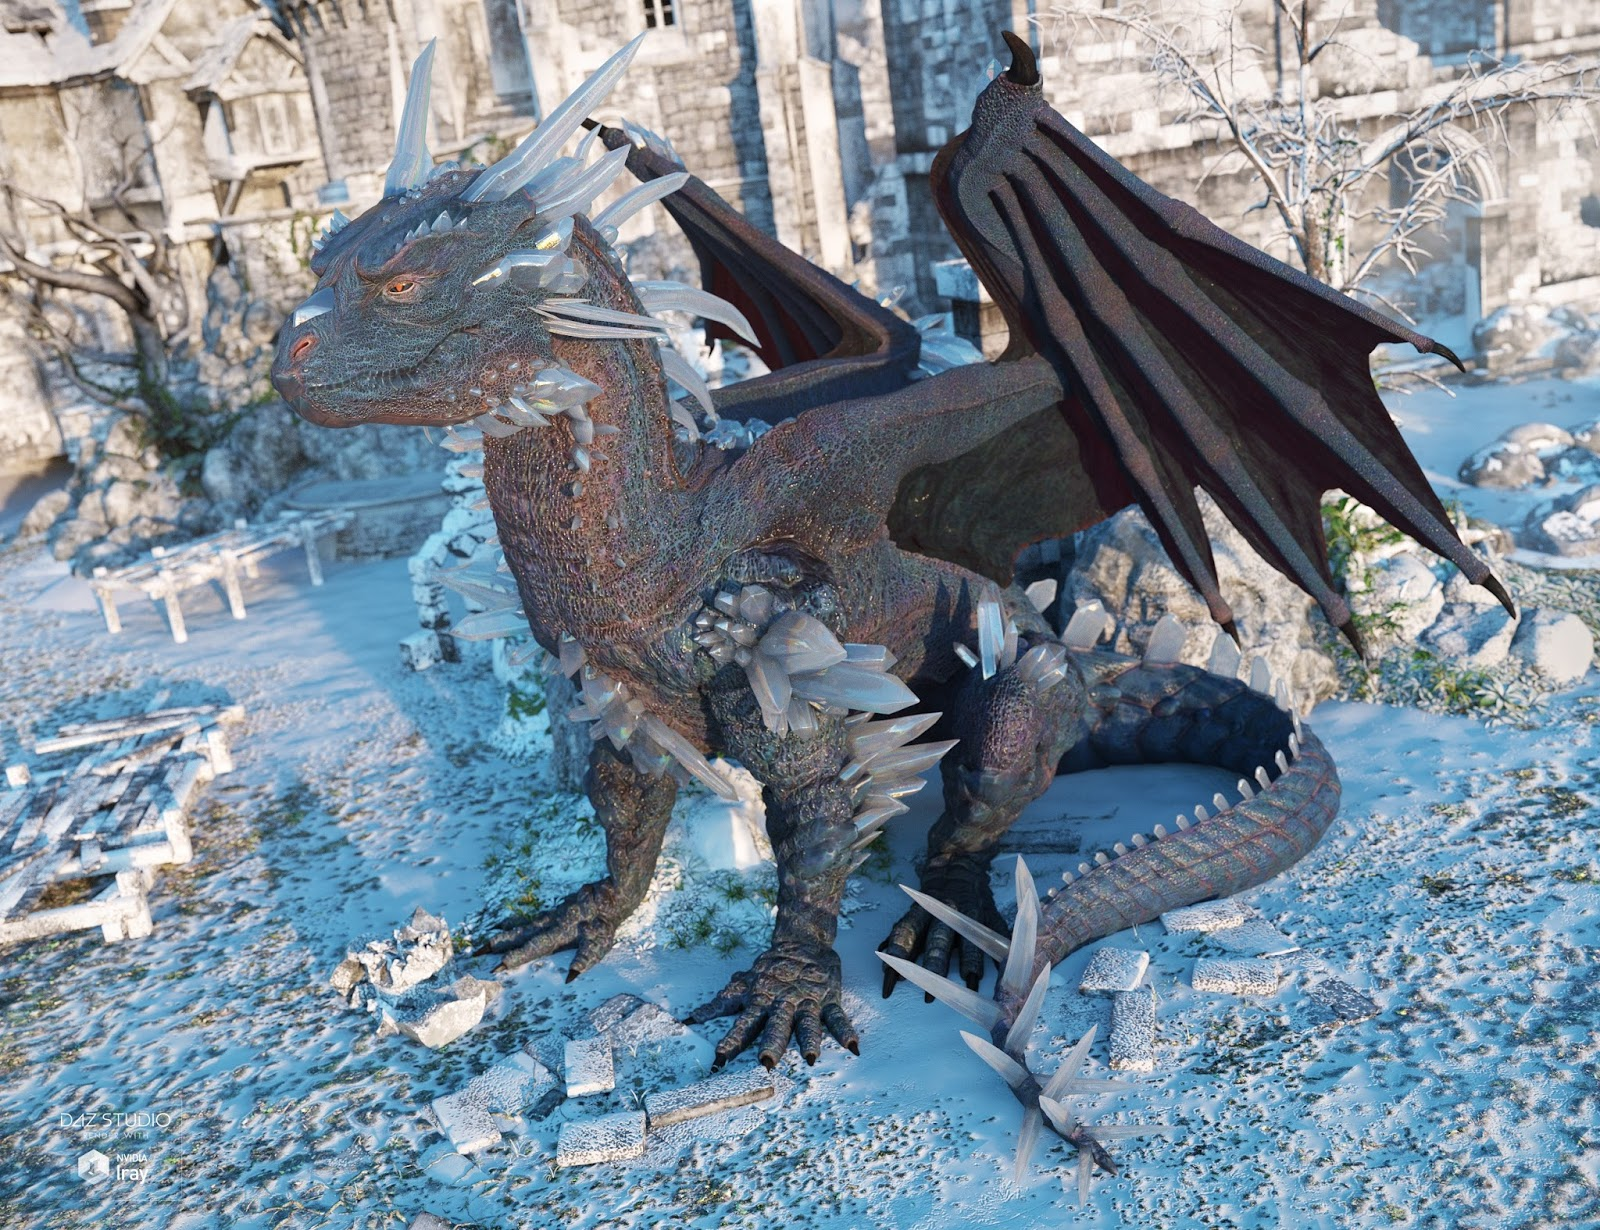 download daz studio 3 for free daz 3d crystal dragon for the